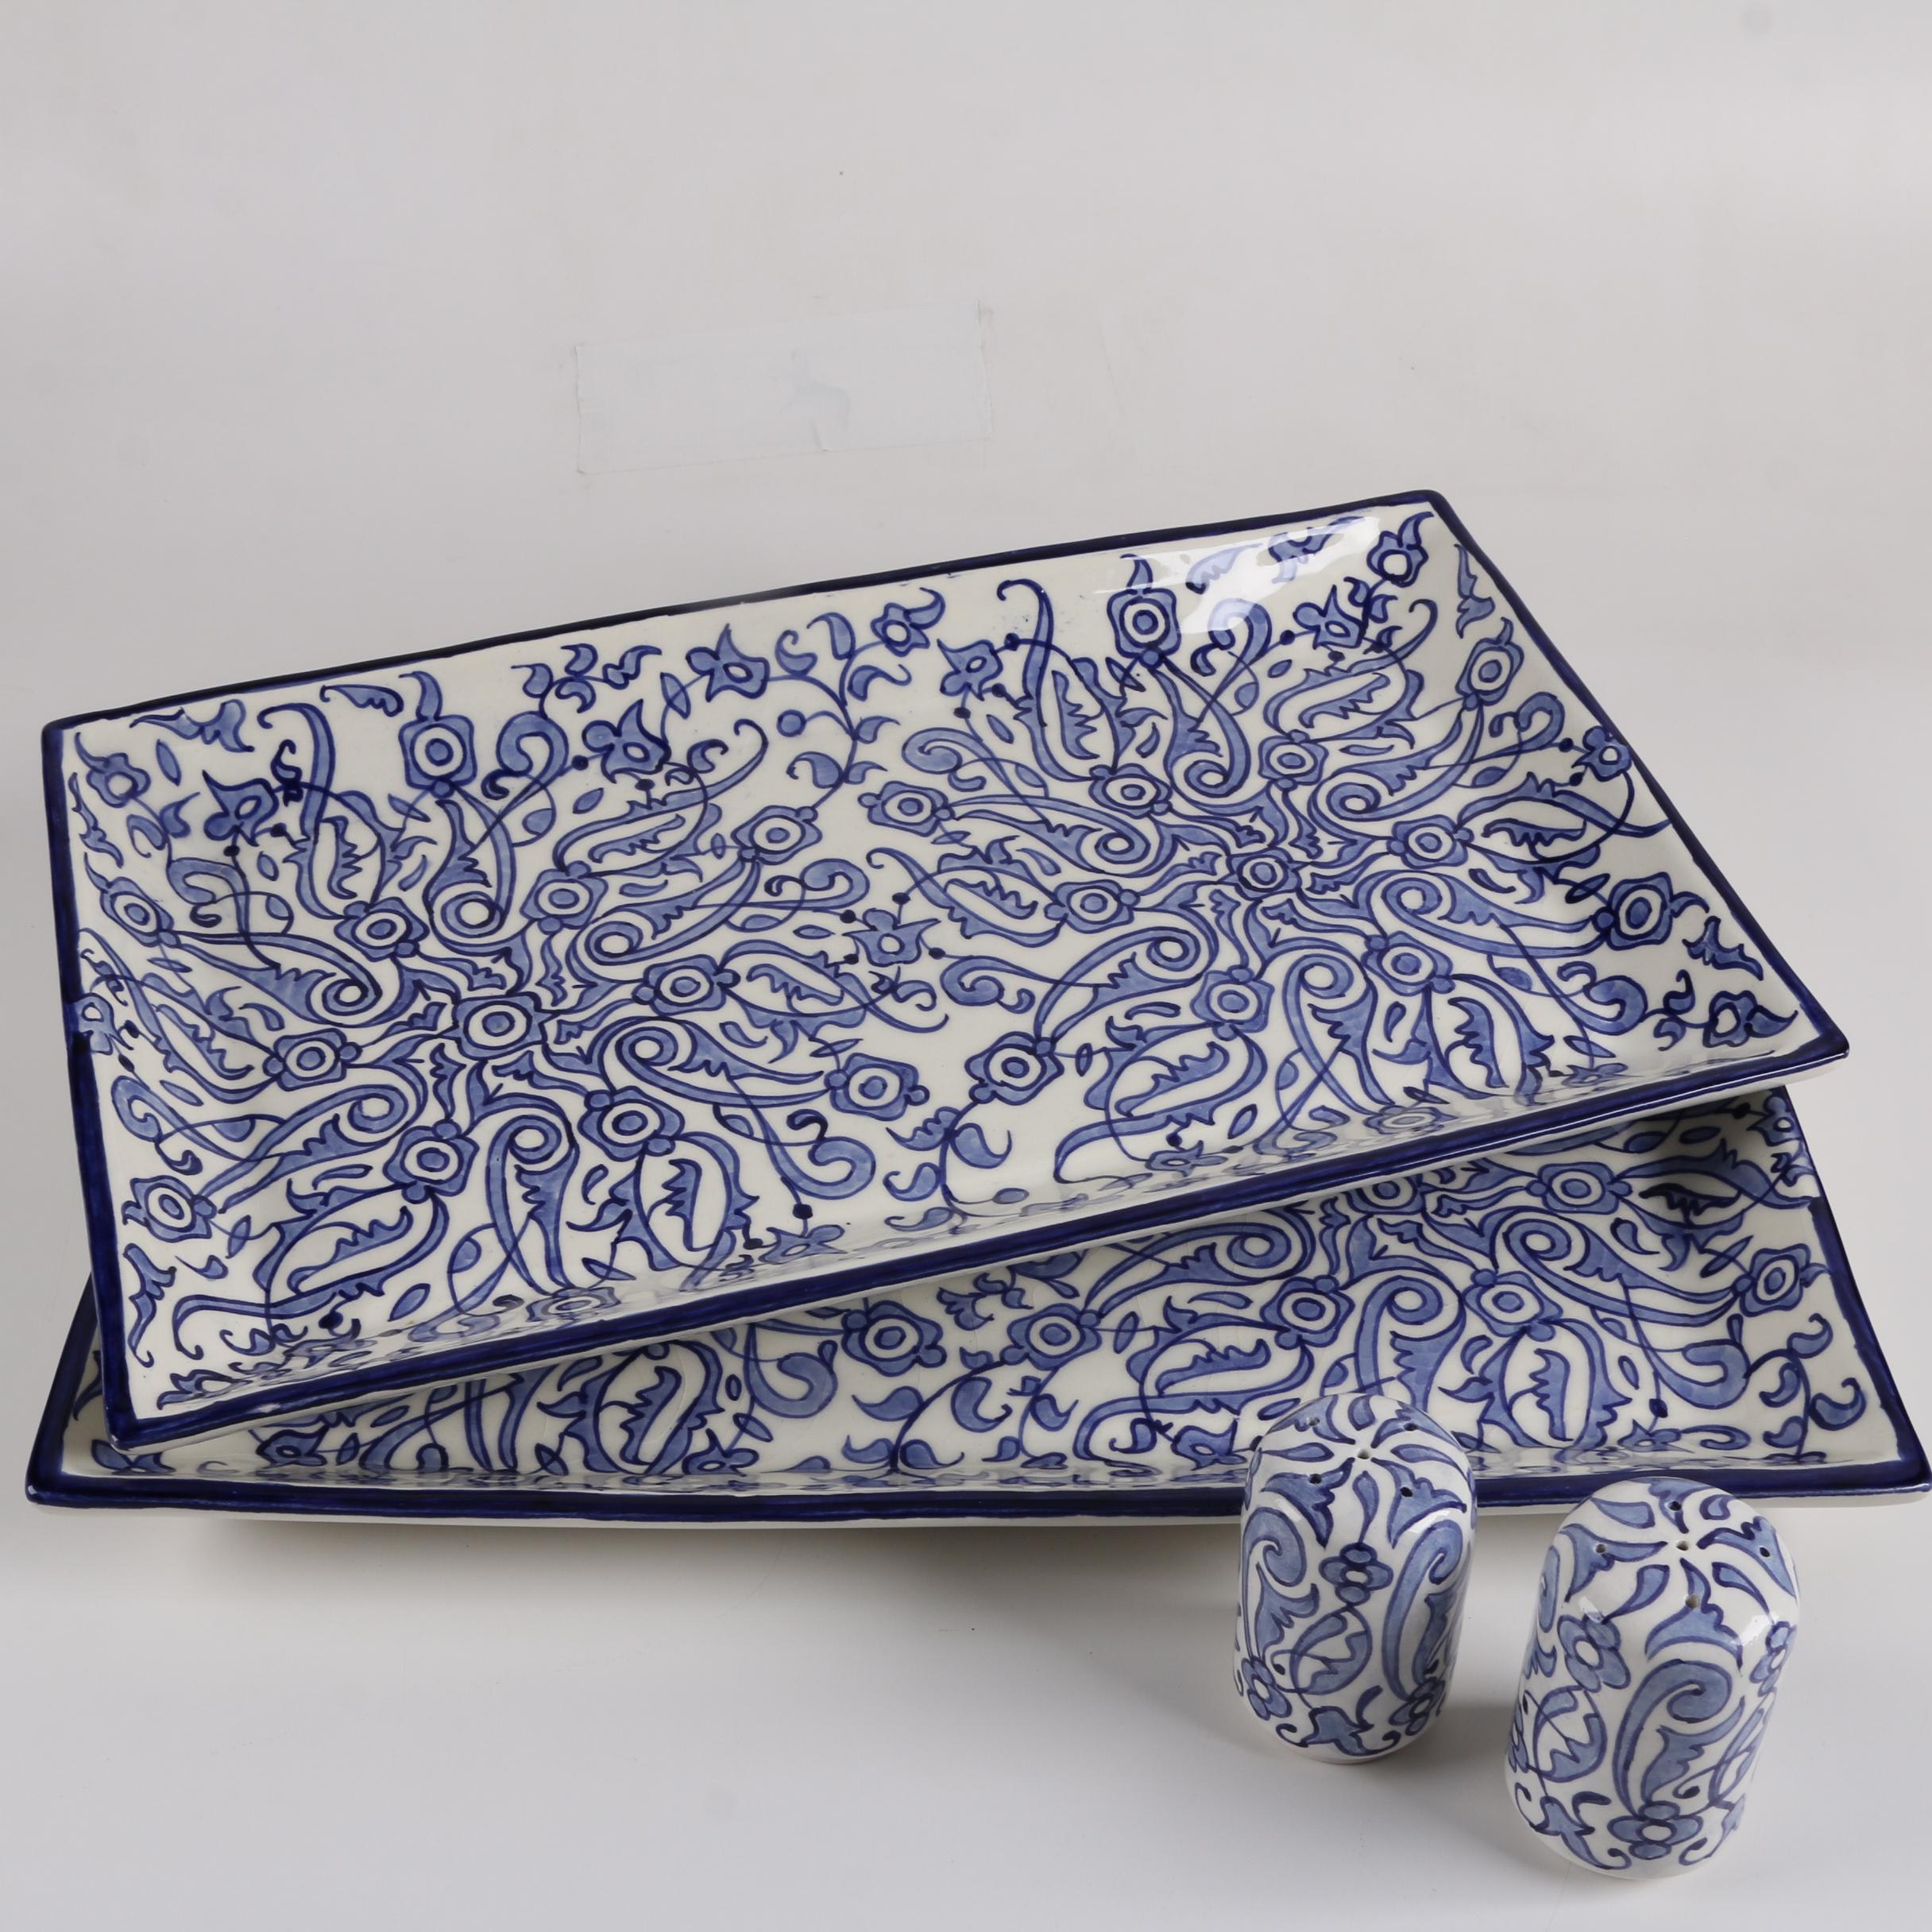 Hand-Painted Moroccan Serving Trays and Shakers